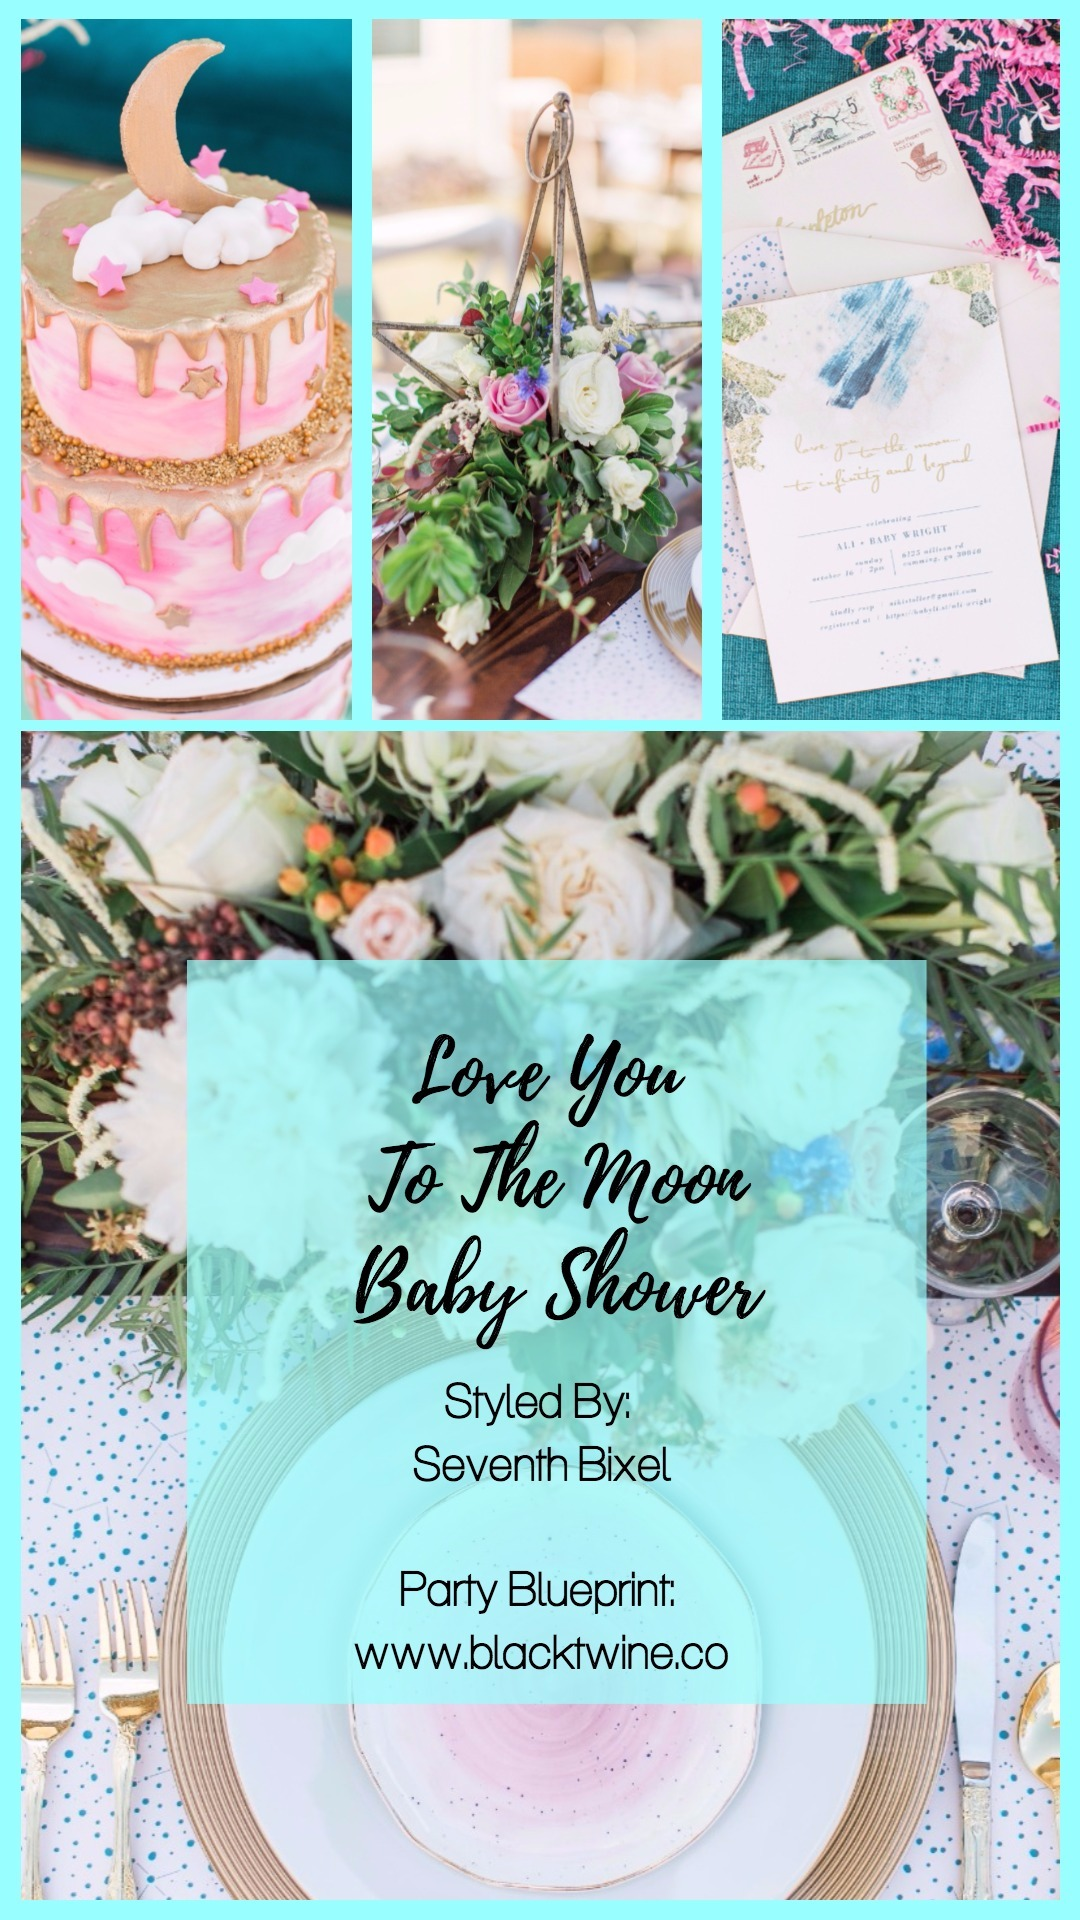 Love You To The Moon Baby Shower by Seventh Bixel | Black Twine